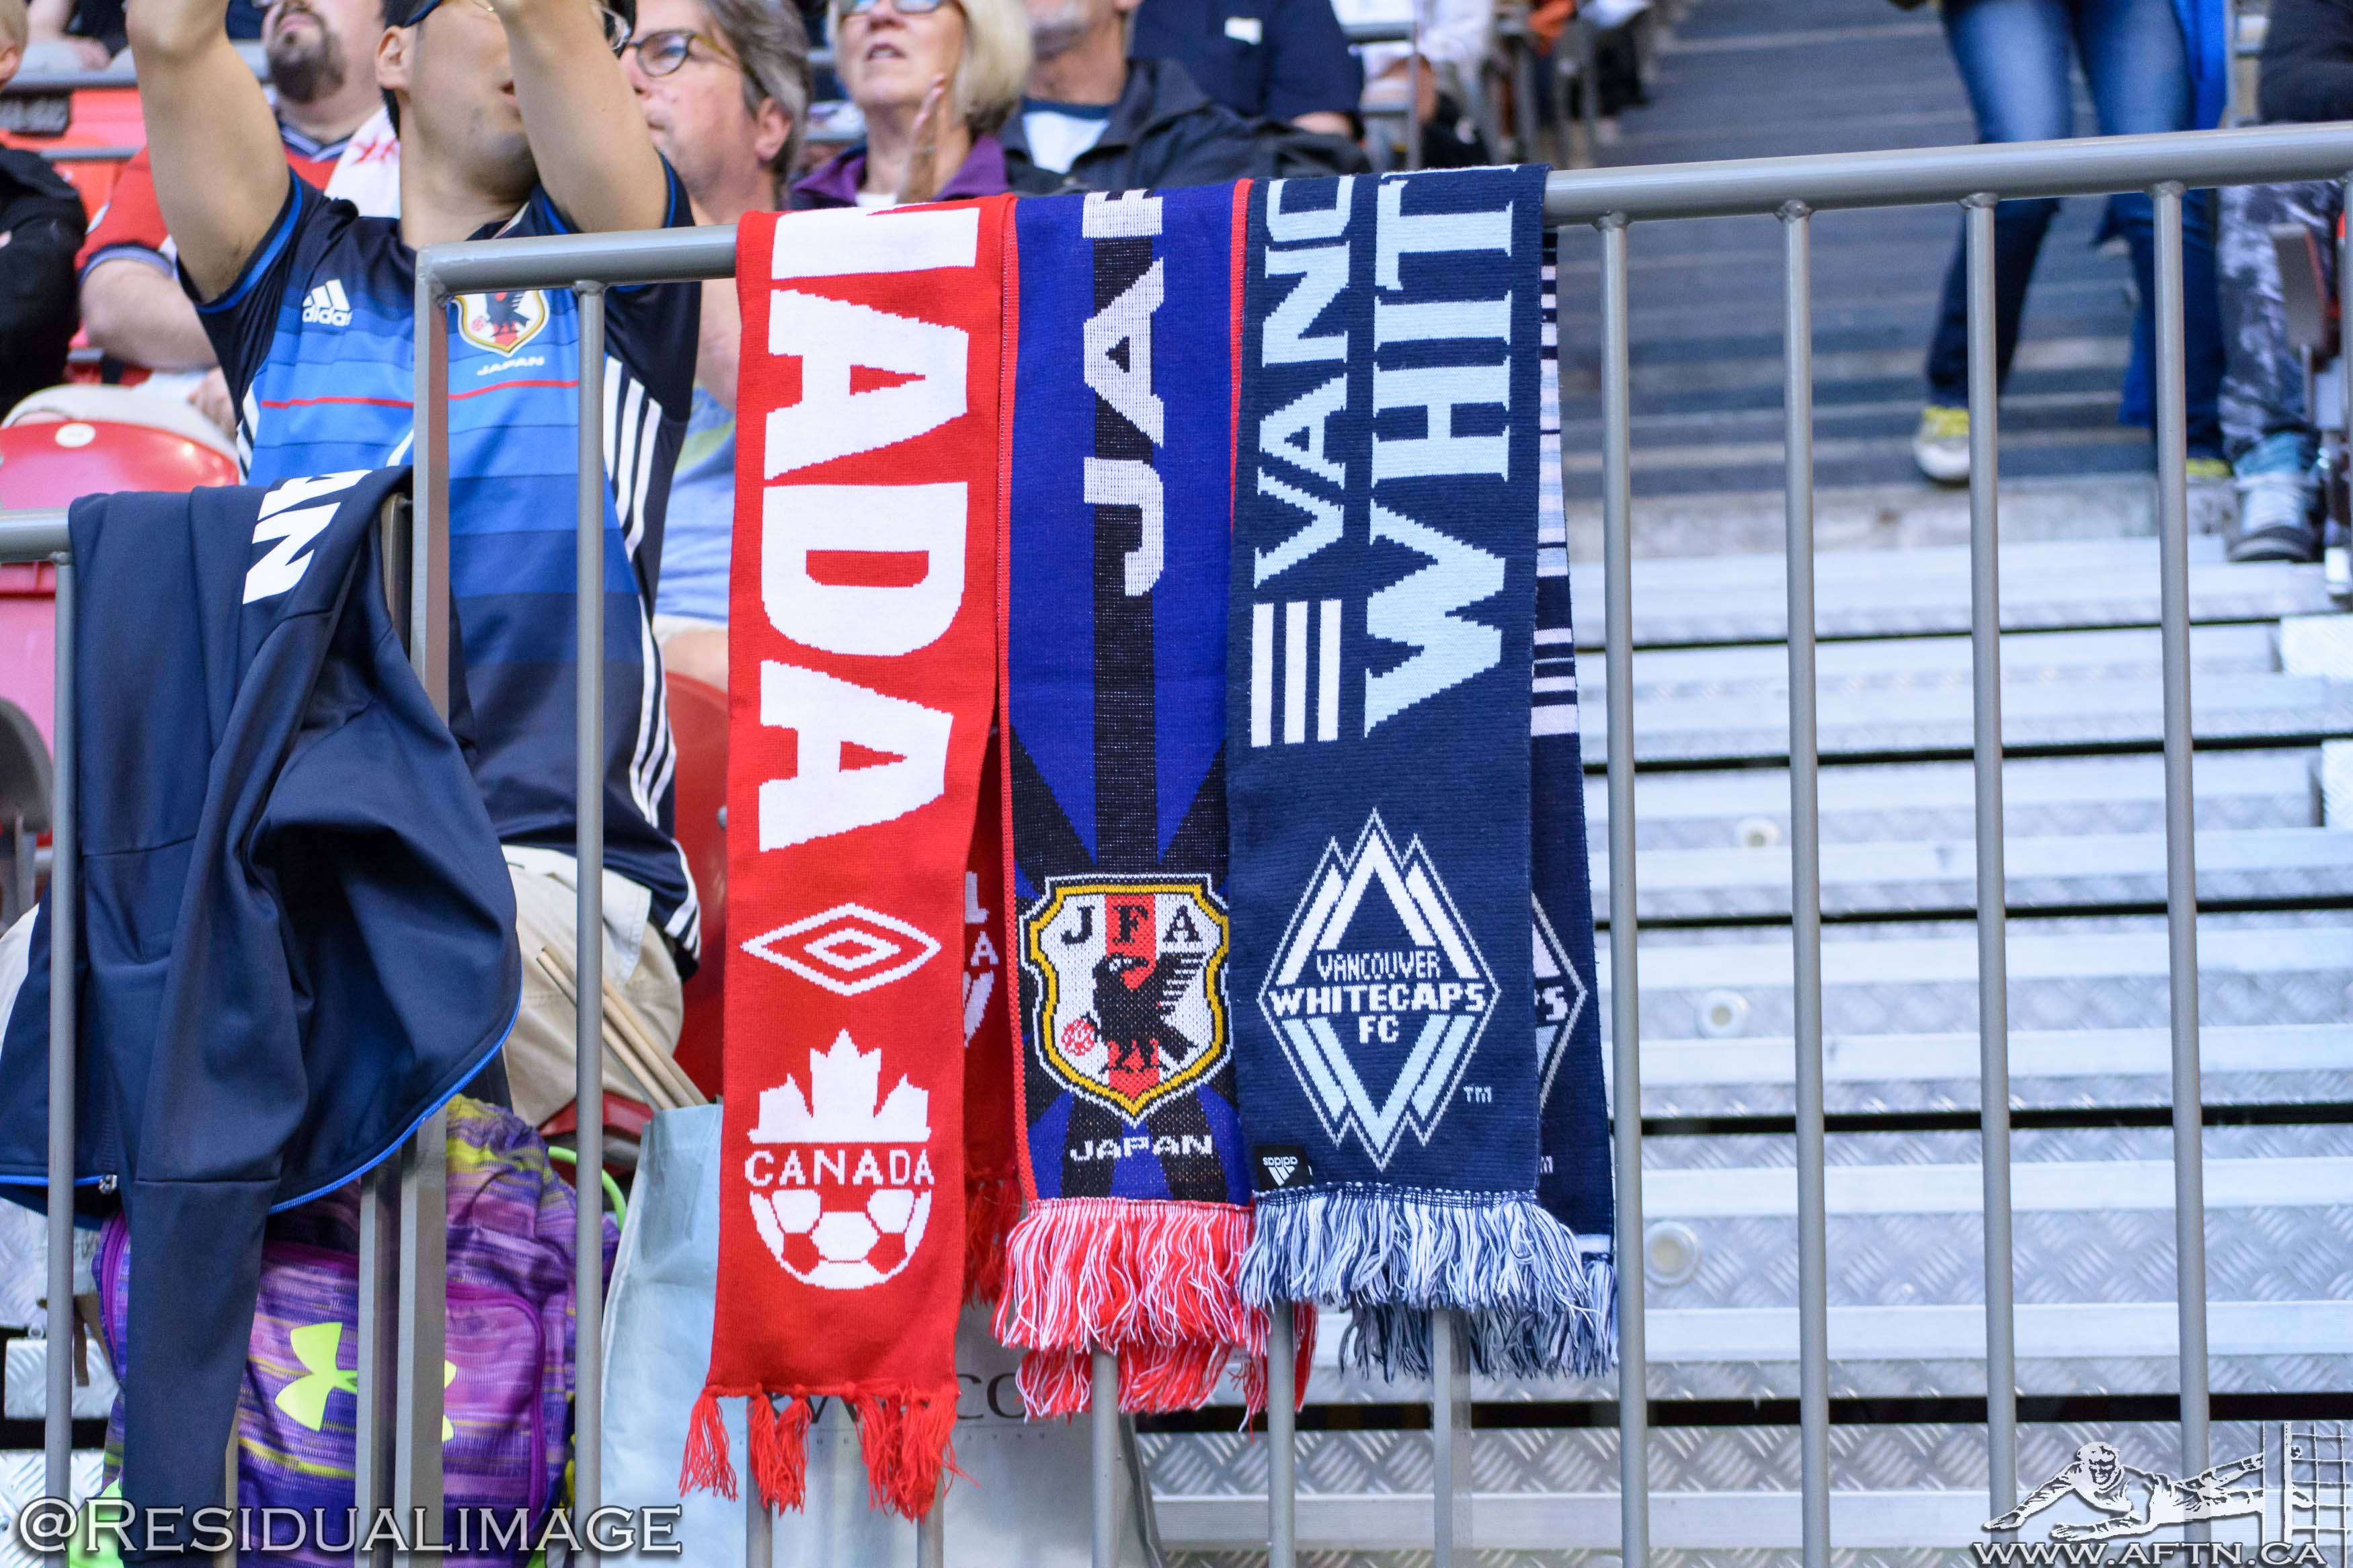 Vancouver Whitecaps v Chicago Fire - 11052016 (25)